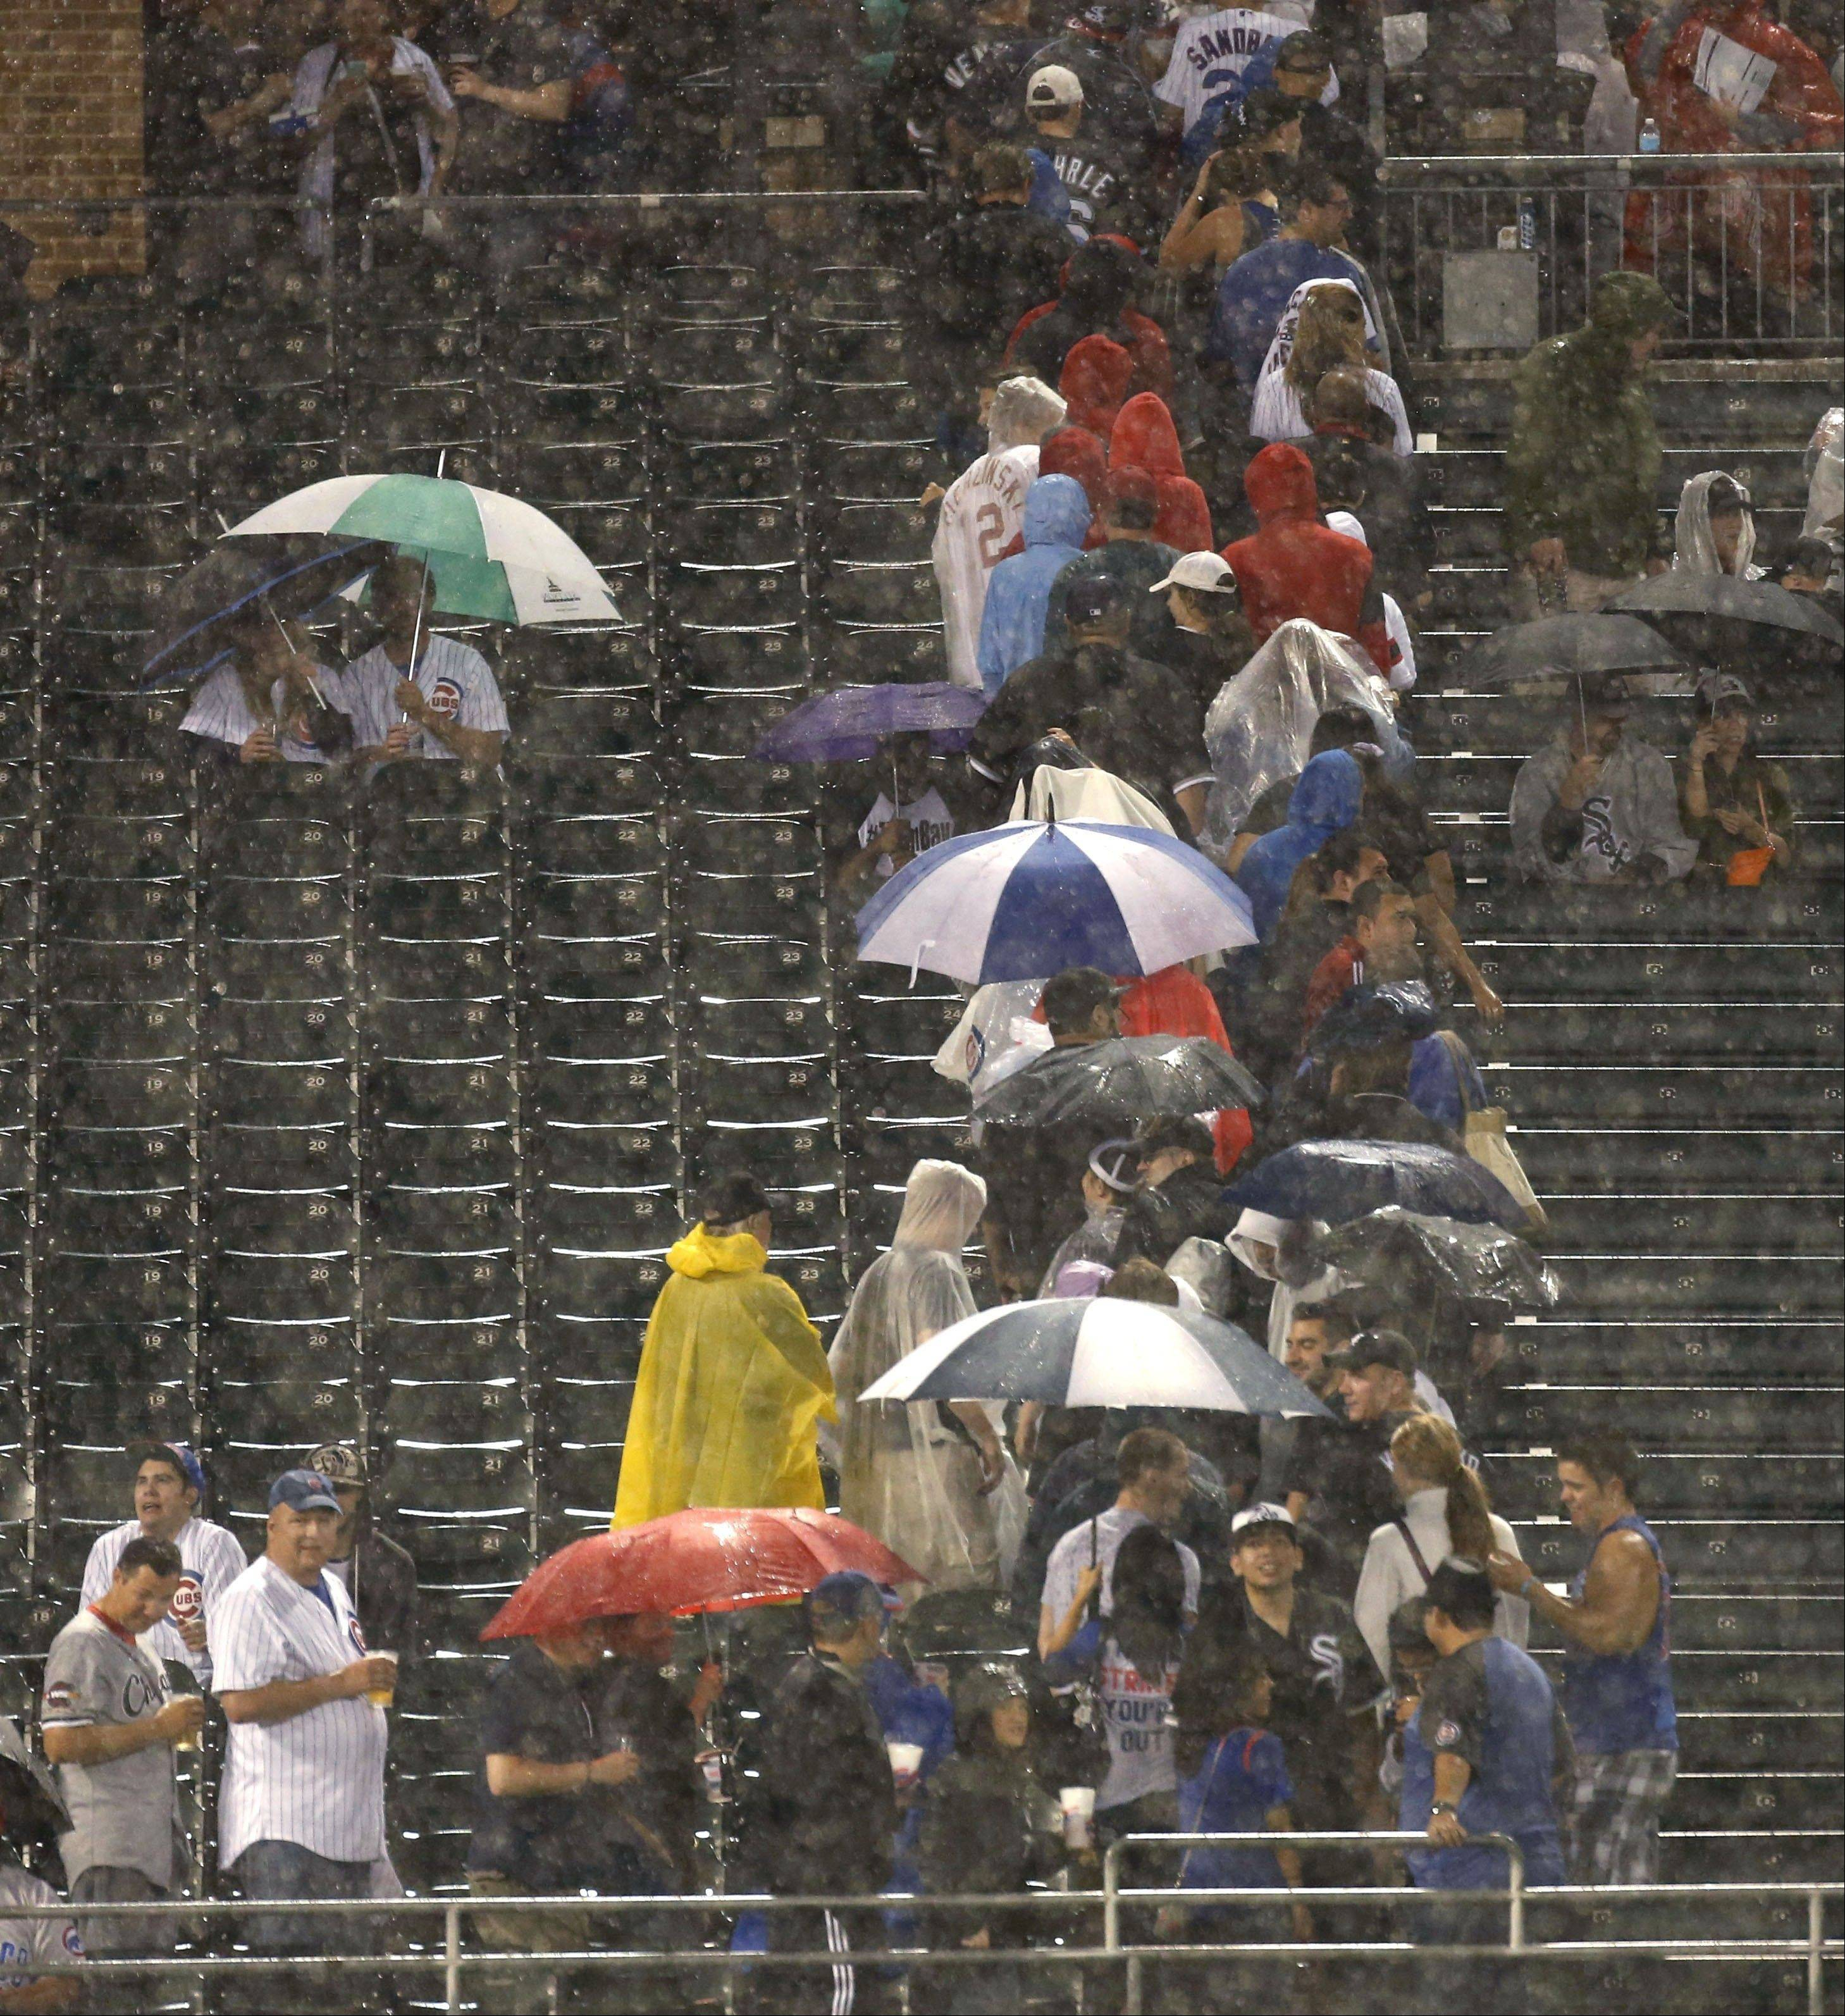 Some baseball fans seek shelter during a downpour in the third inning of an interleague baseball game between the Chicago White Sox and the Chicago Cubs on Tuesday, May 28, 2013, in Chicago. (AP Photo/Charles Rex Arbogast)